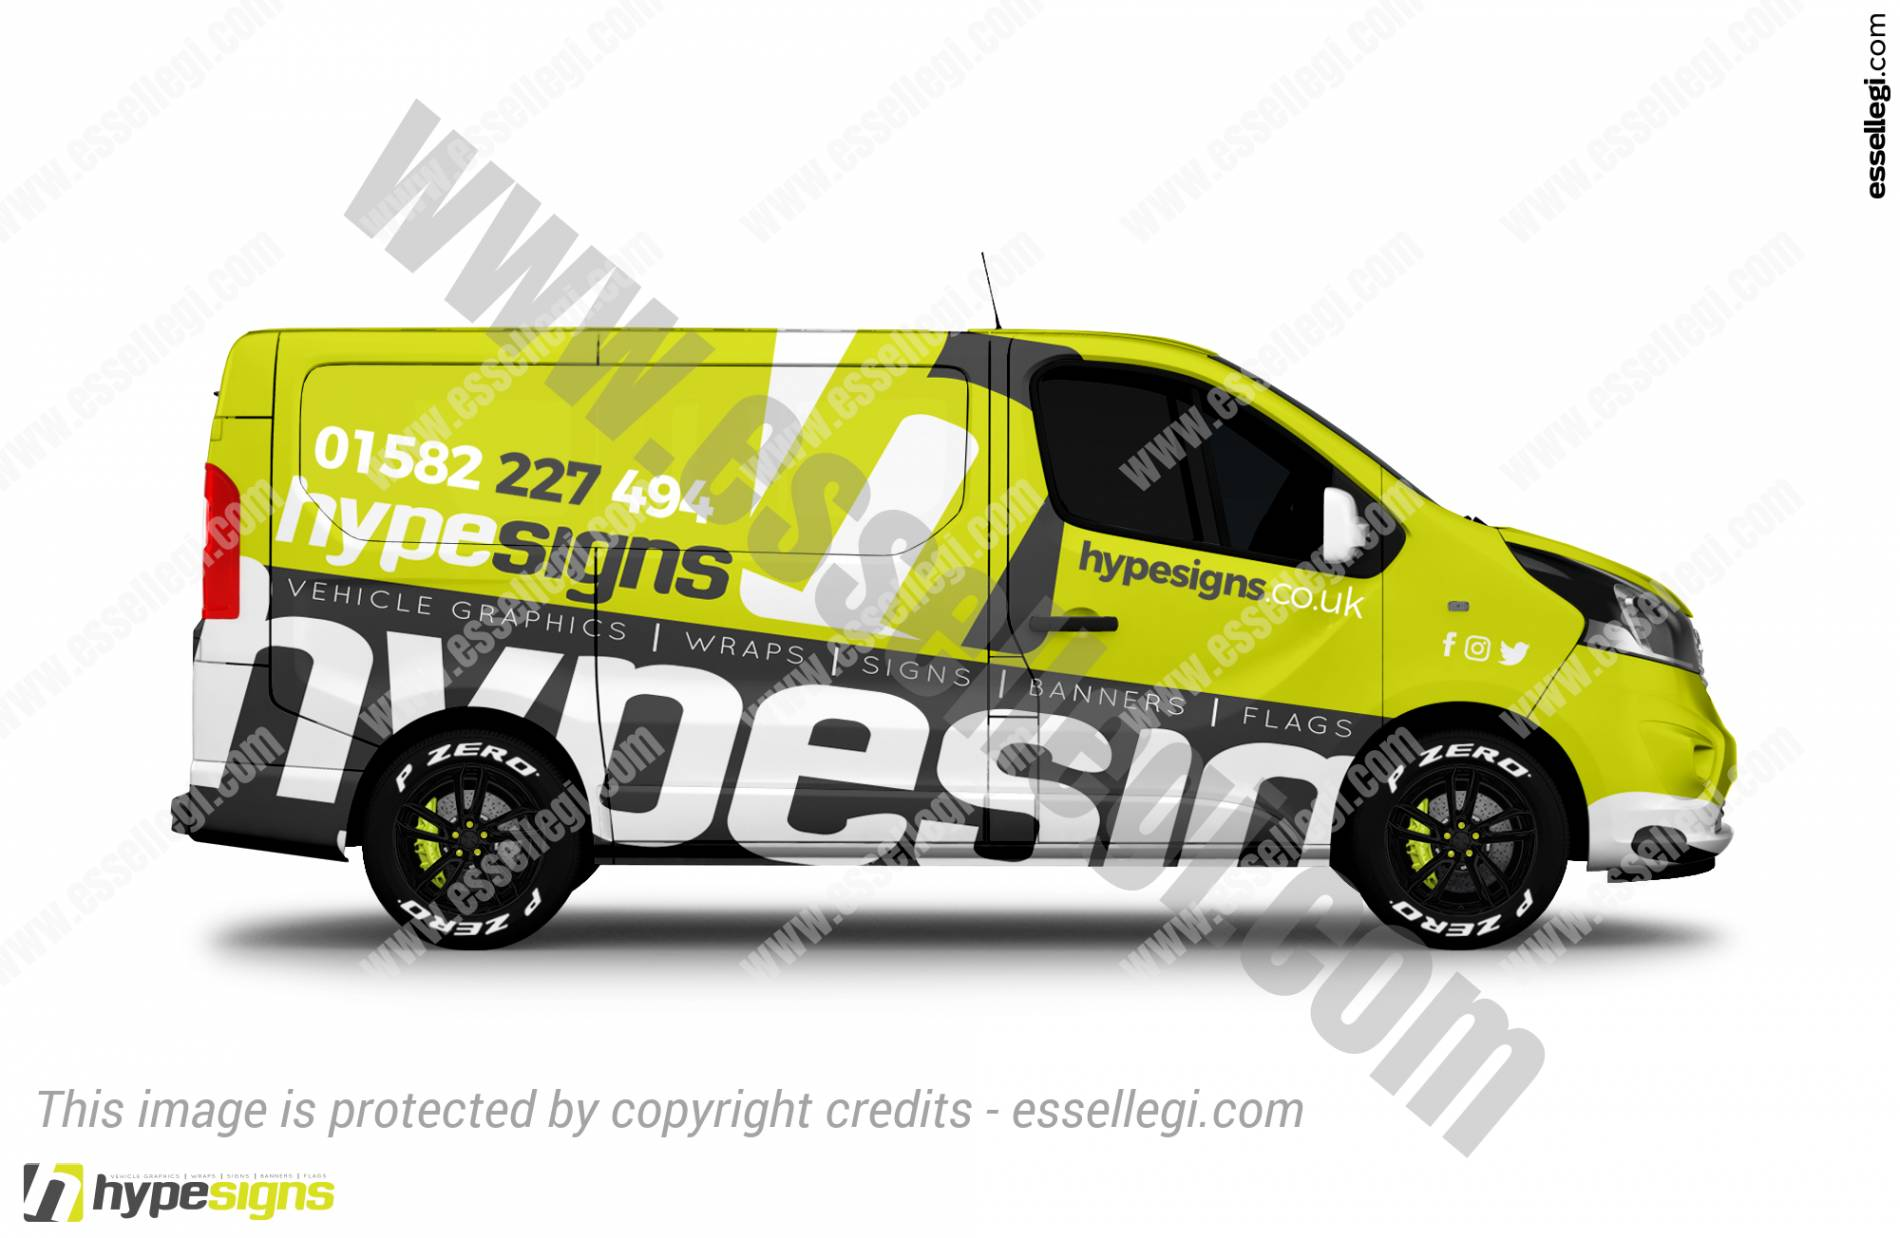 Best Opel Vivaro Wrap Design for Signs, Signage & Wraps ...